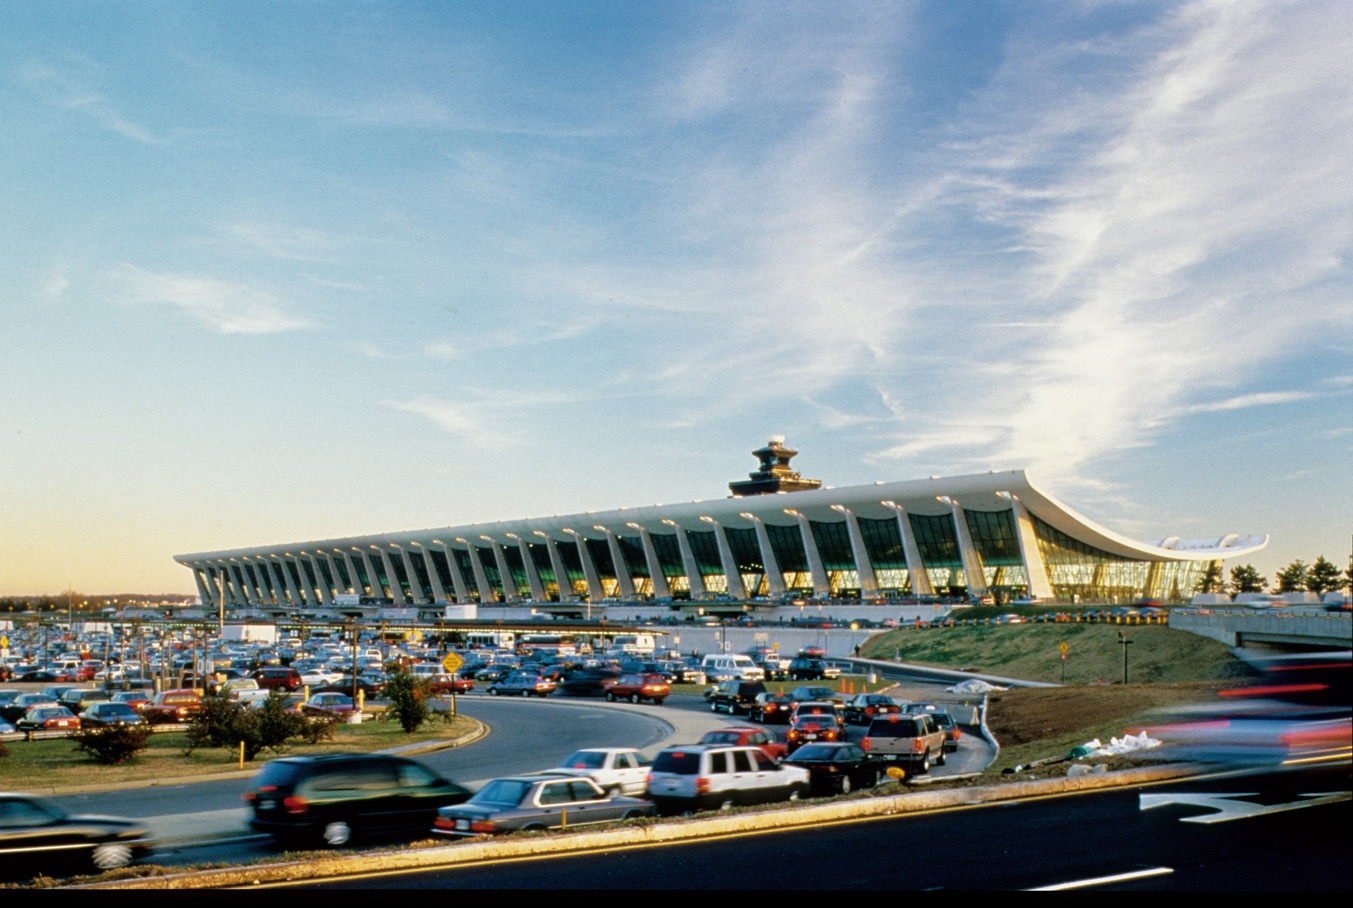 51c8091339acdWashington_Dulles_International_Airport